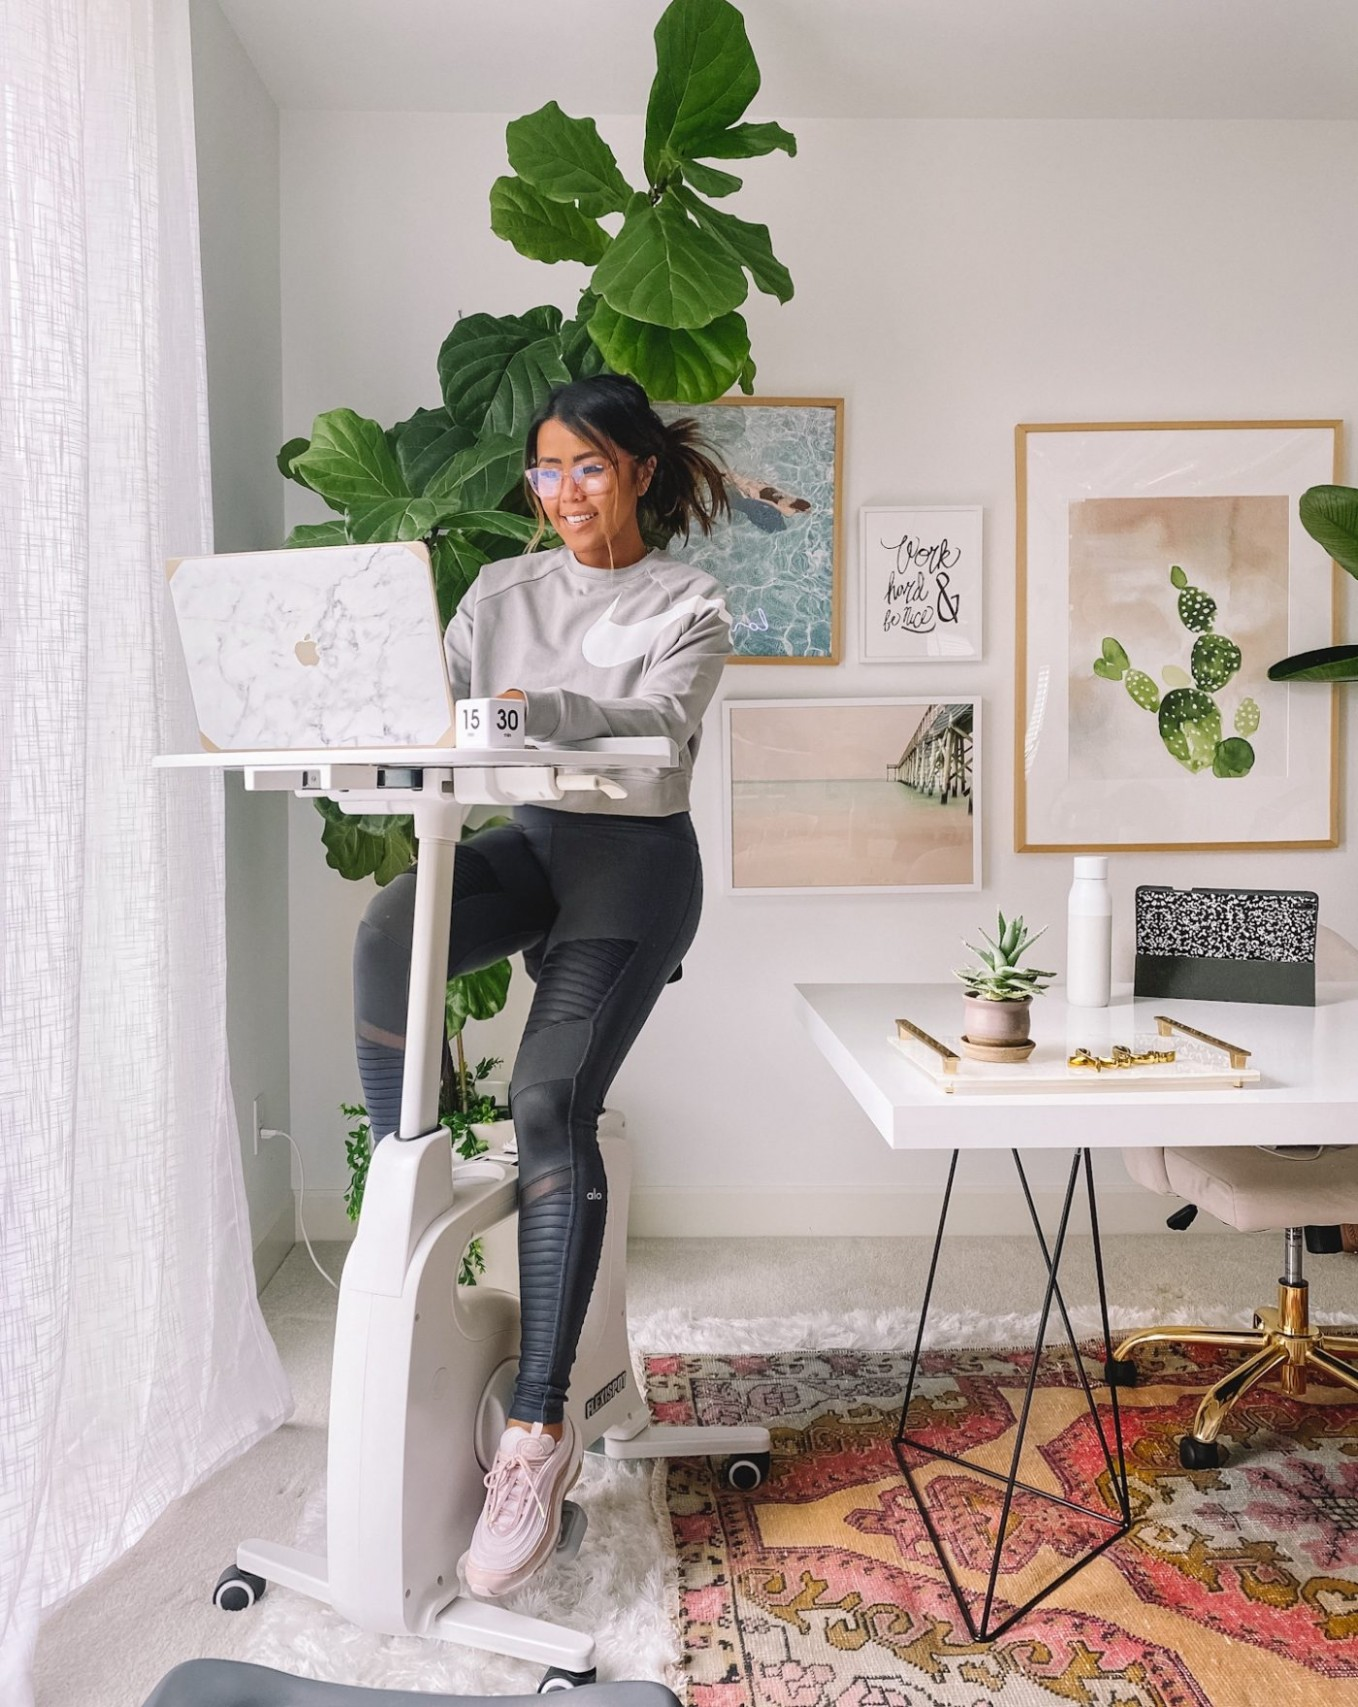 WFH: Home Office Setup Ideas  Gypsy Tan - Home Office Ideas Small